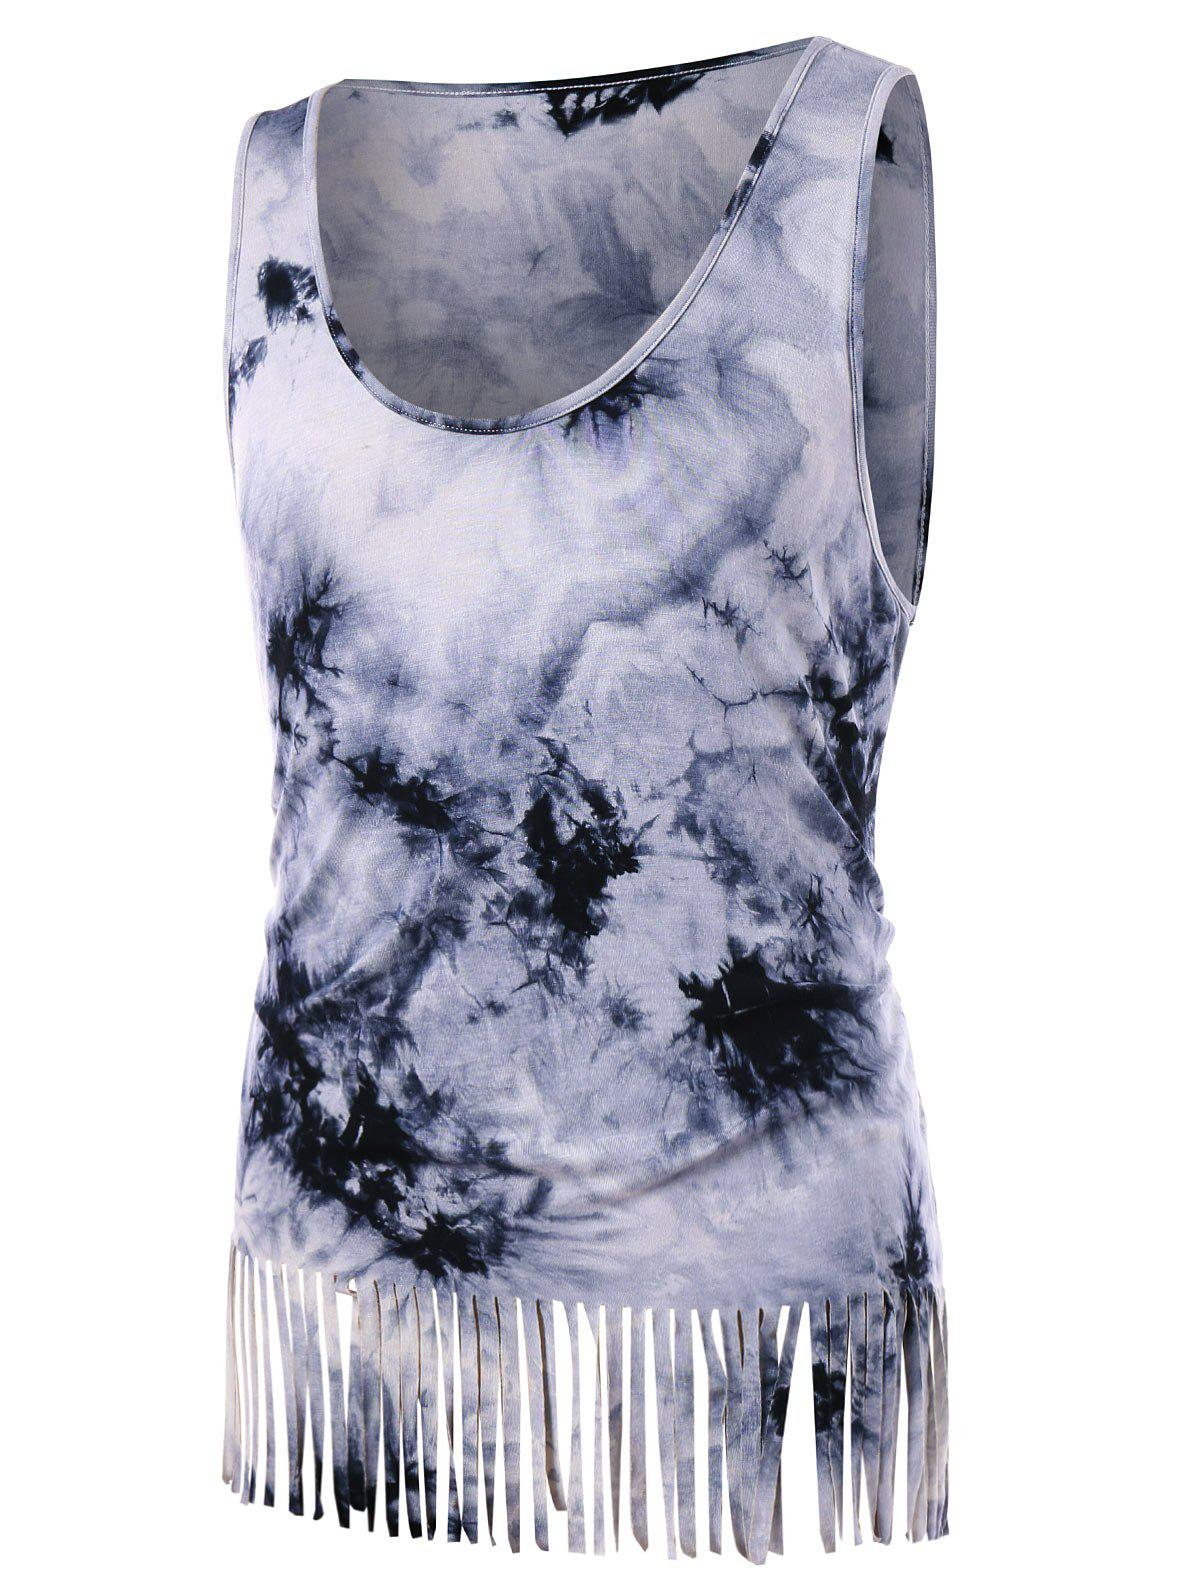 Affordable Fringe Tie Dye Tank Top